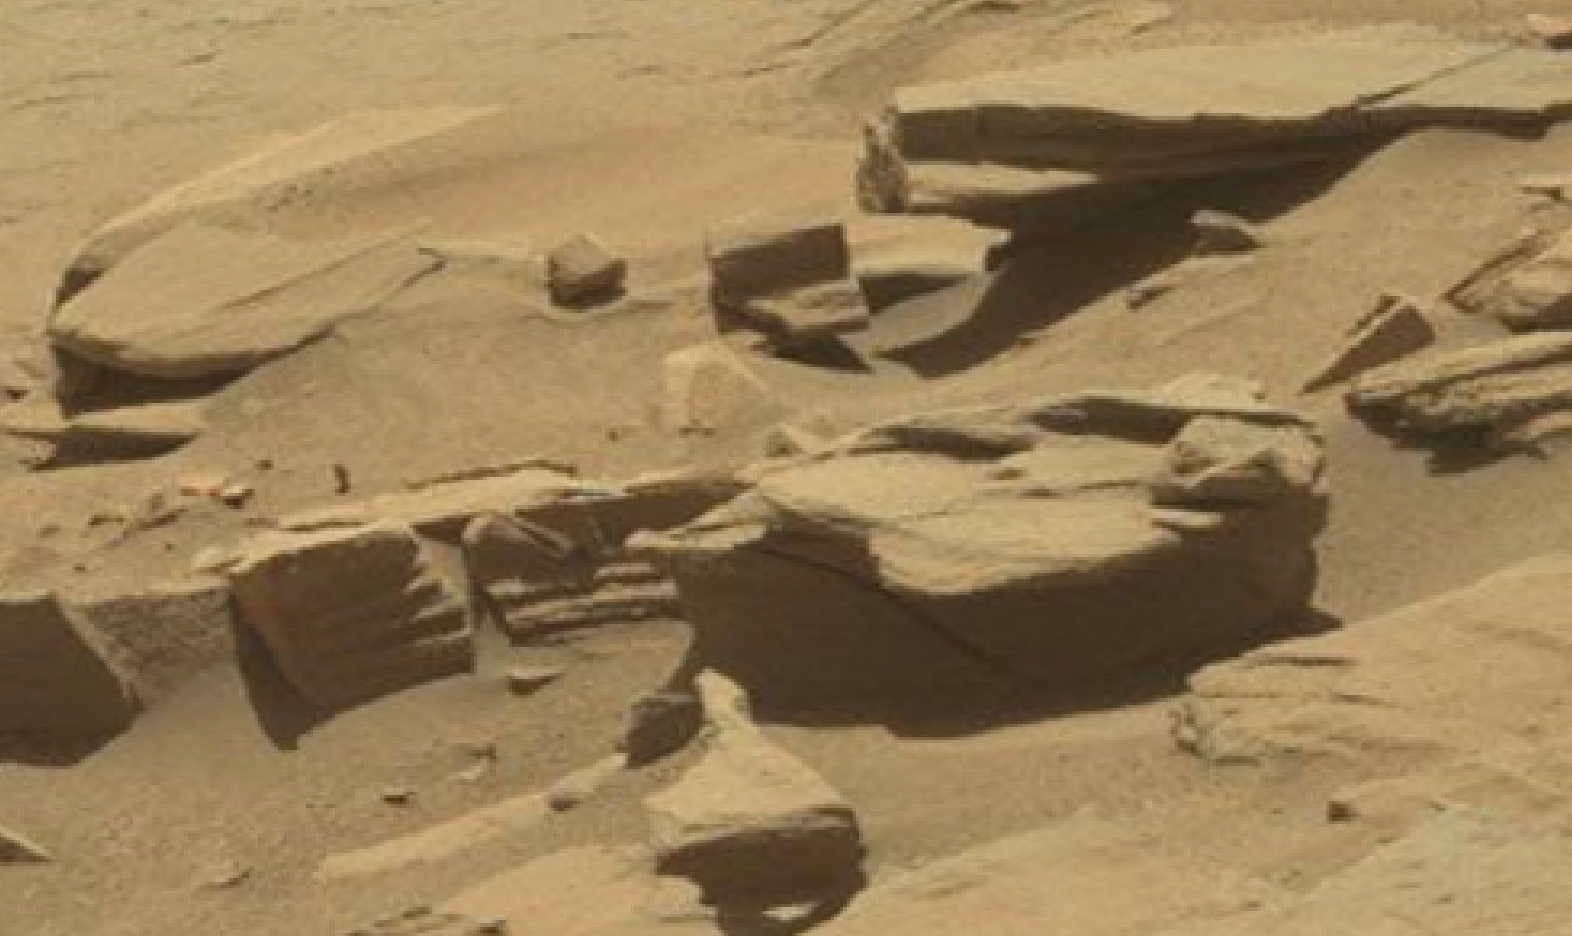 mars sol 1296 anomaly-artifacts 27 was life on mars